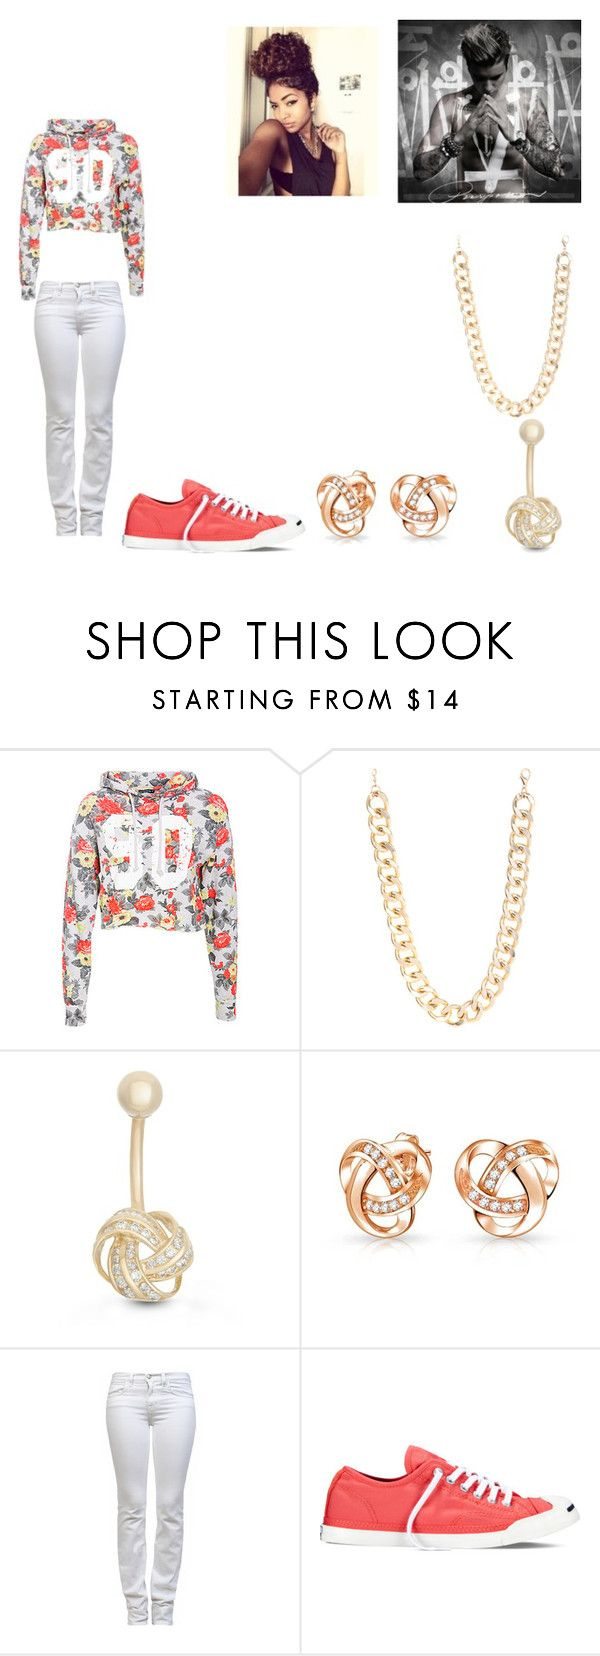 """Going to the Purpose Tour"" by princezz1438 ❤ liked on Polyvore featuring Justin Bieber, Jane Norman, Gioelli Designs, Bling Jewelry, J Brand, Converse, women's clothing, women's fashion, women and female"